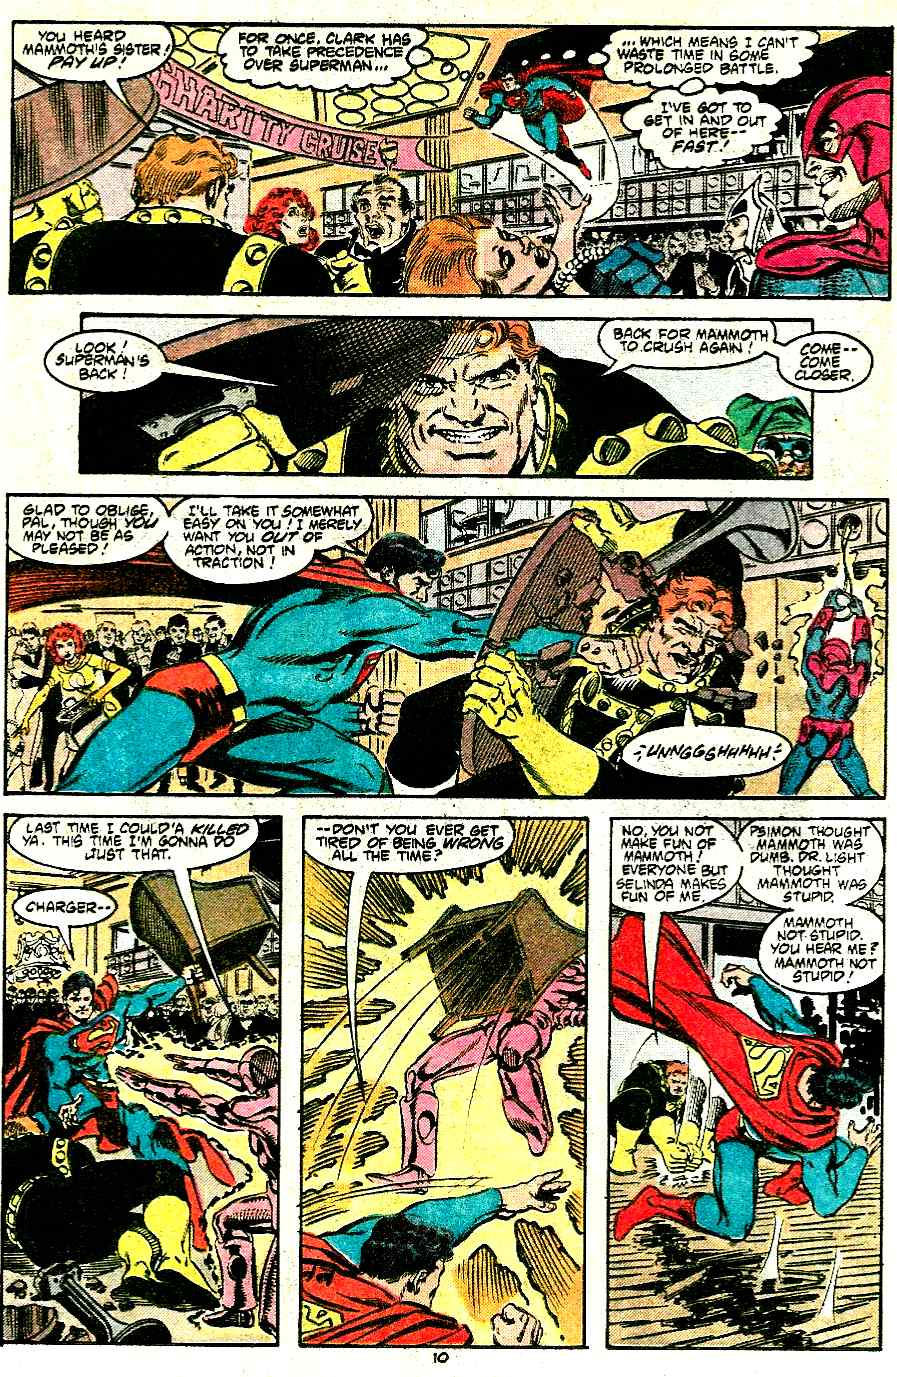 Adventures of Superman (1987) 430 Page 10